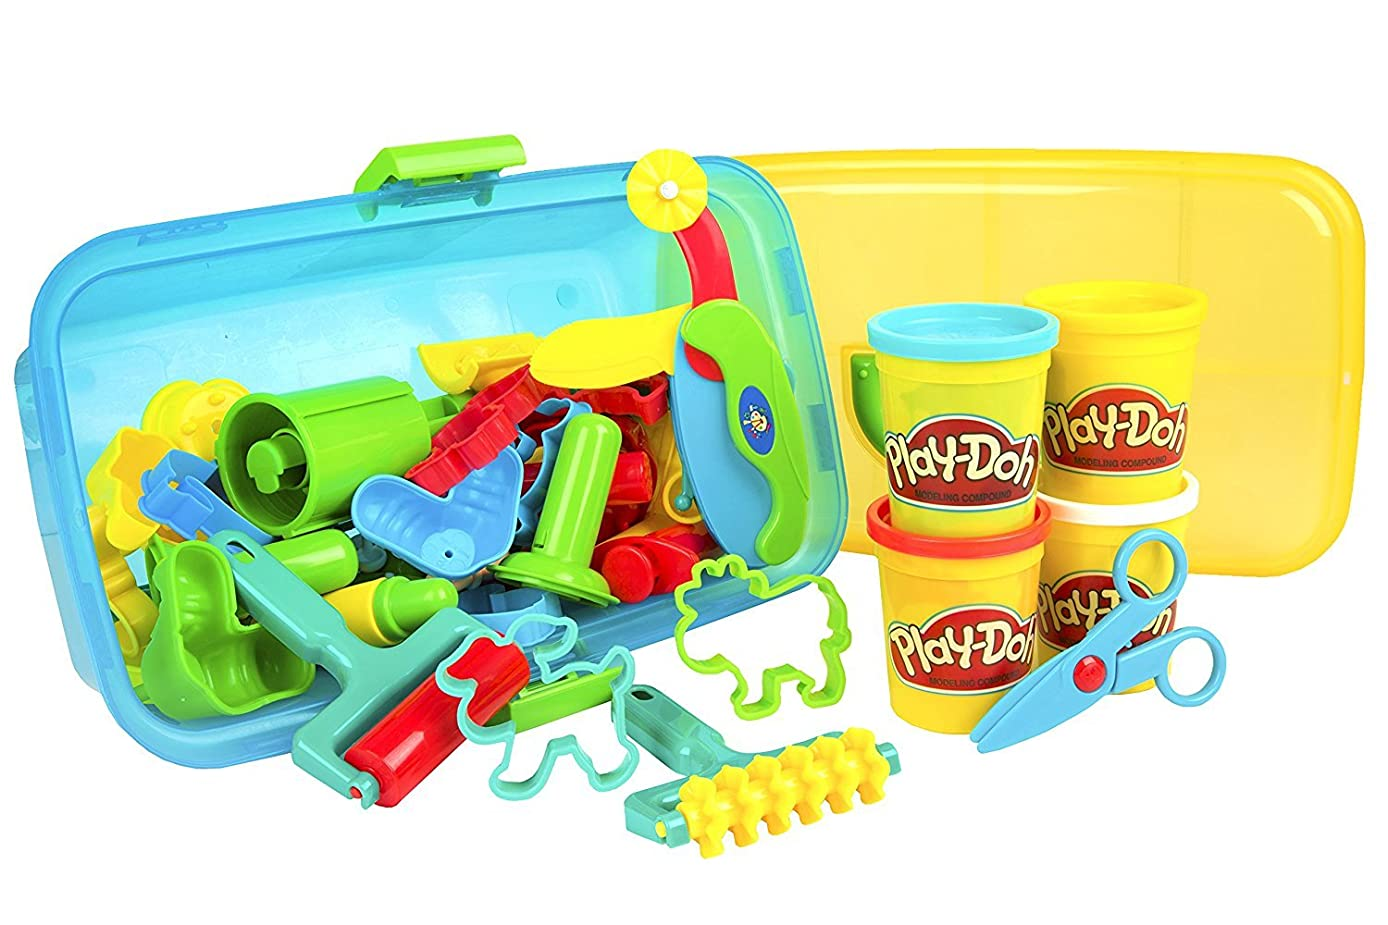 CP Toys Clay Center with Four 5 oz. PLAY-DOH Brand Modeling Compound and Storage Case